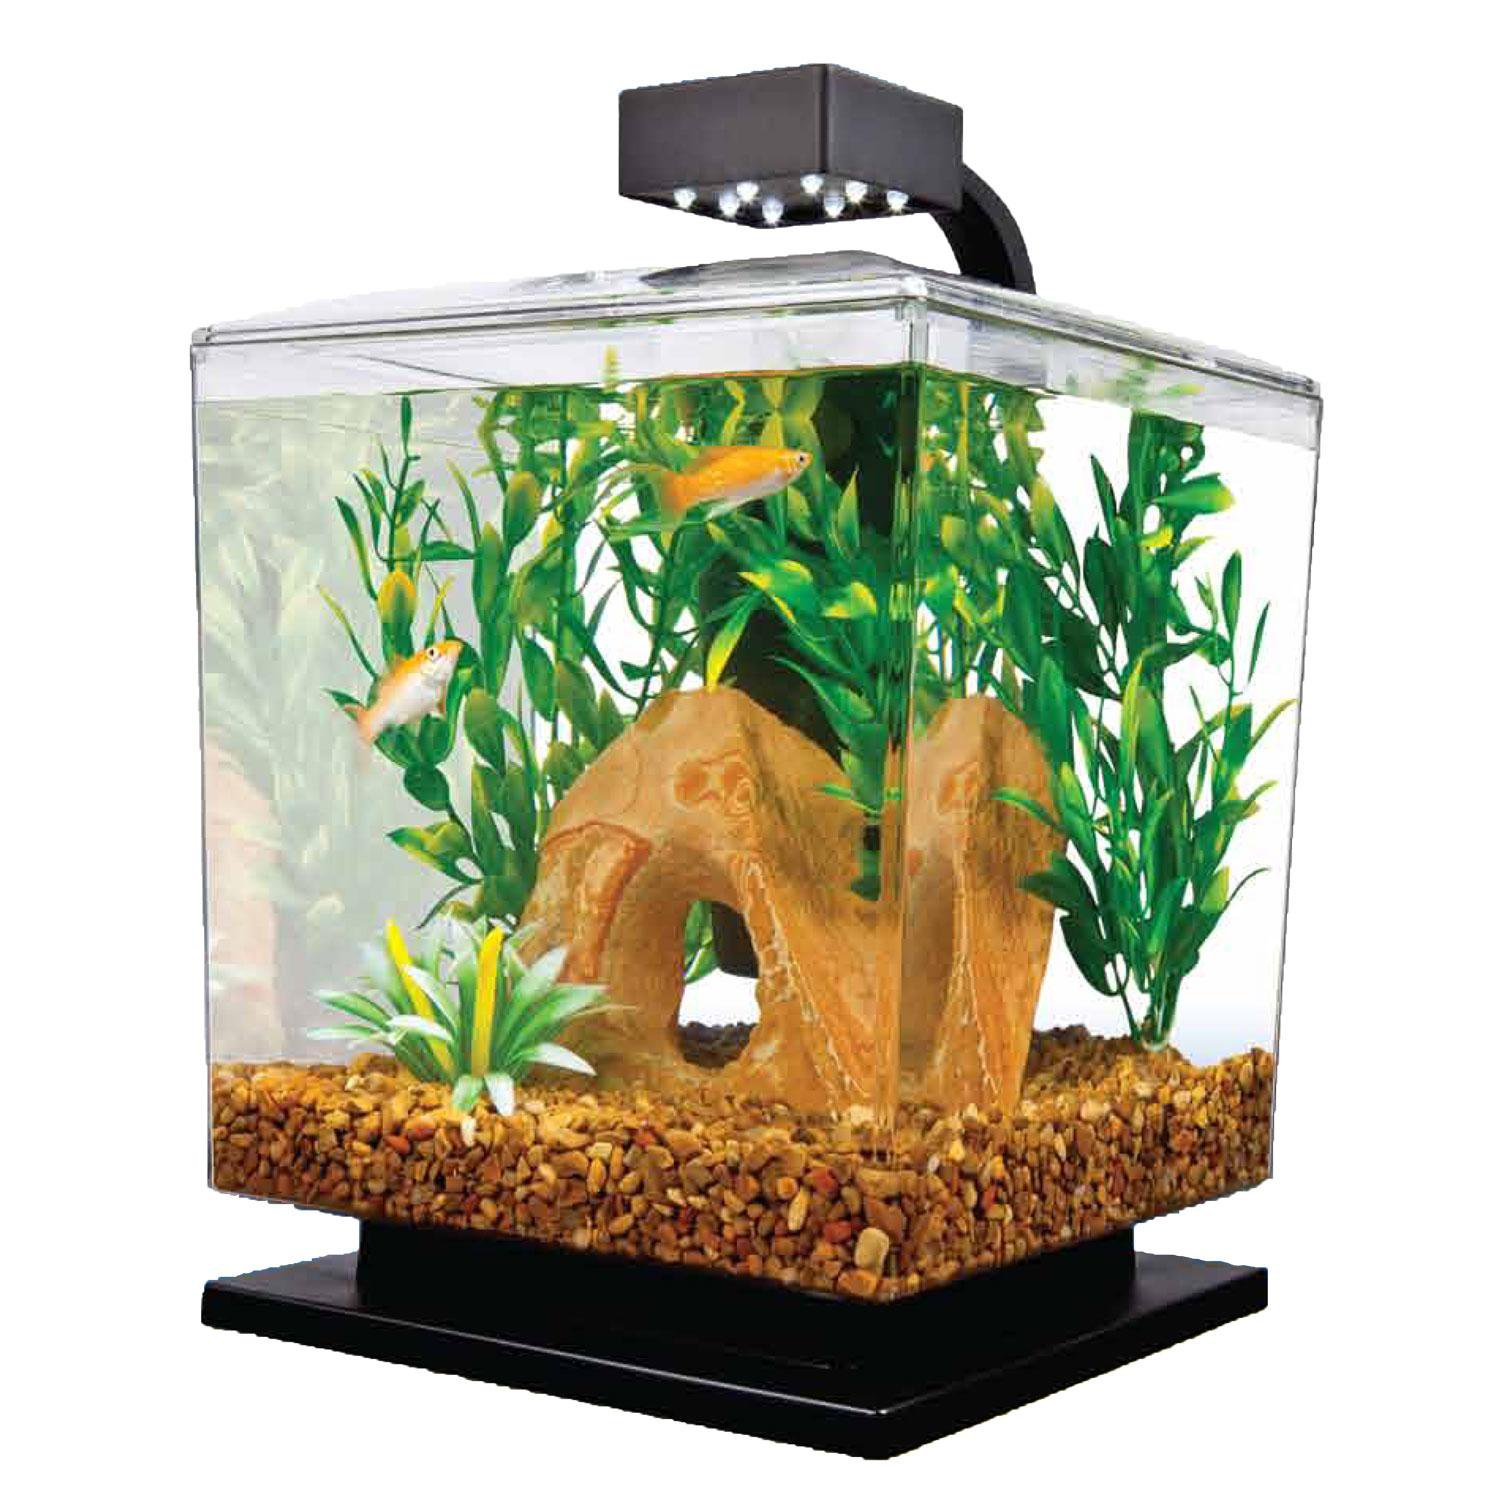 Small aquarium fish tanks - Tetra 1 5 Gallon Led Desktop Aquarium Kit